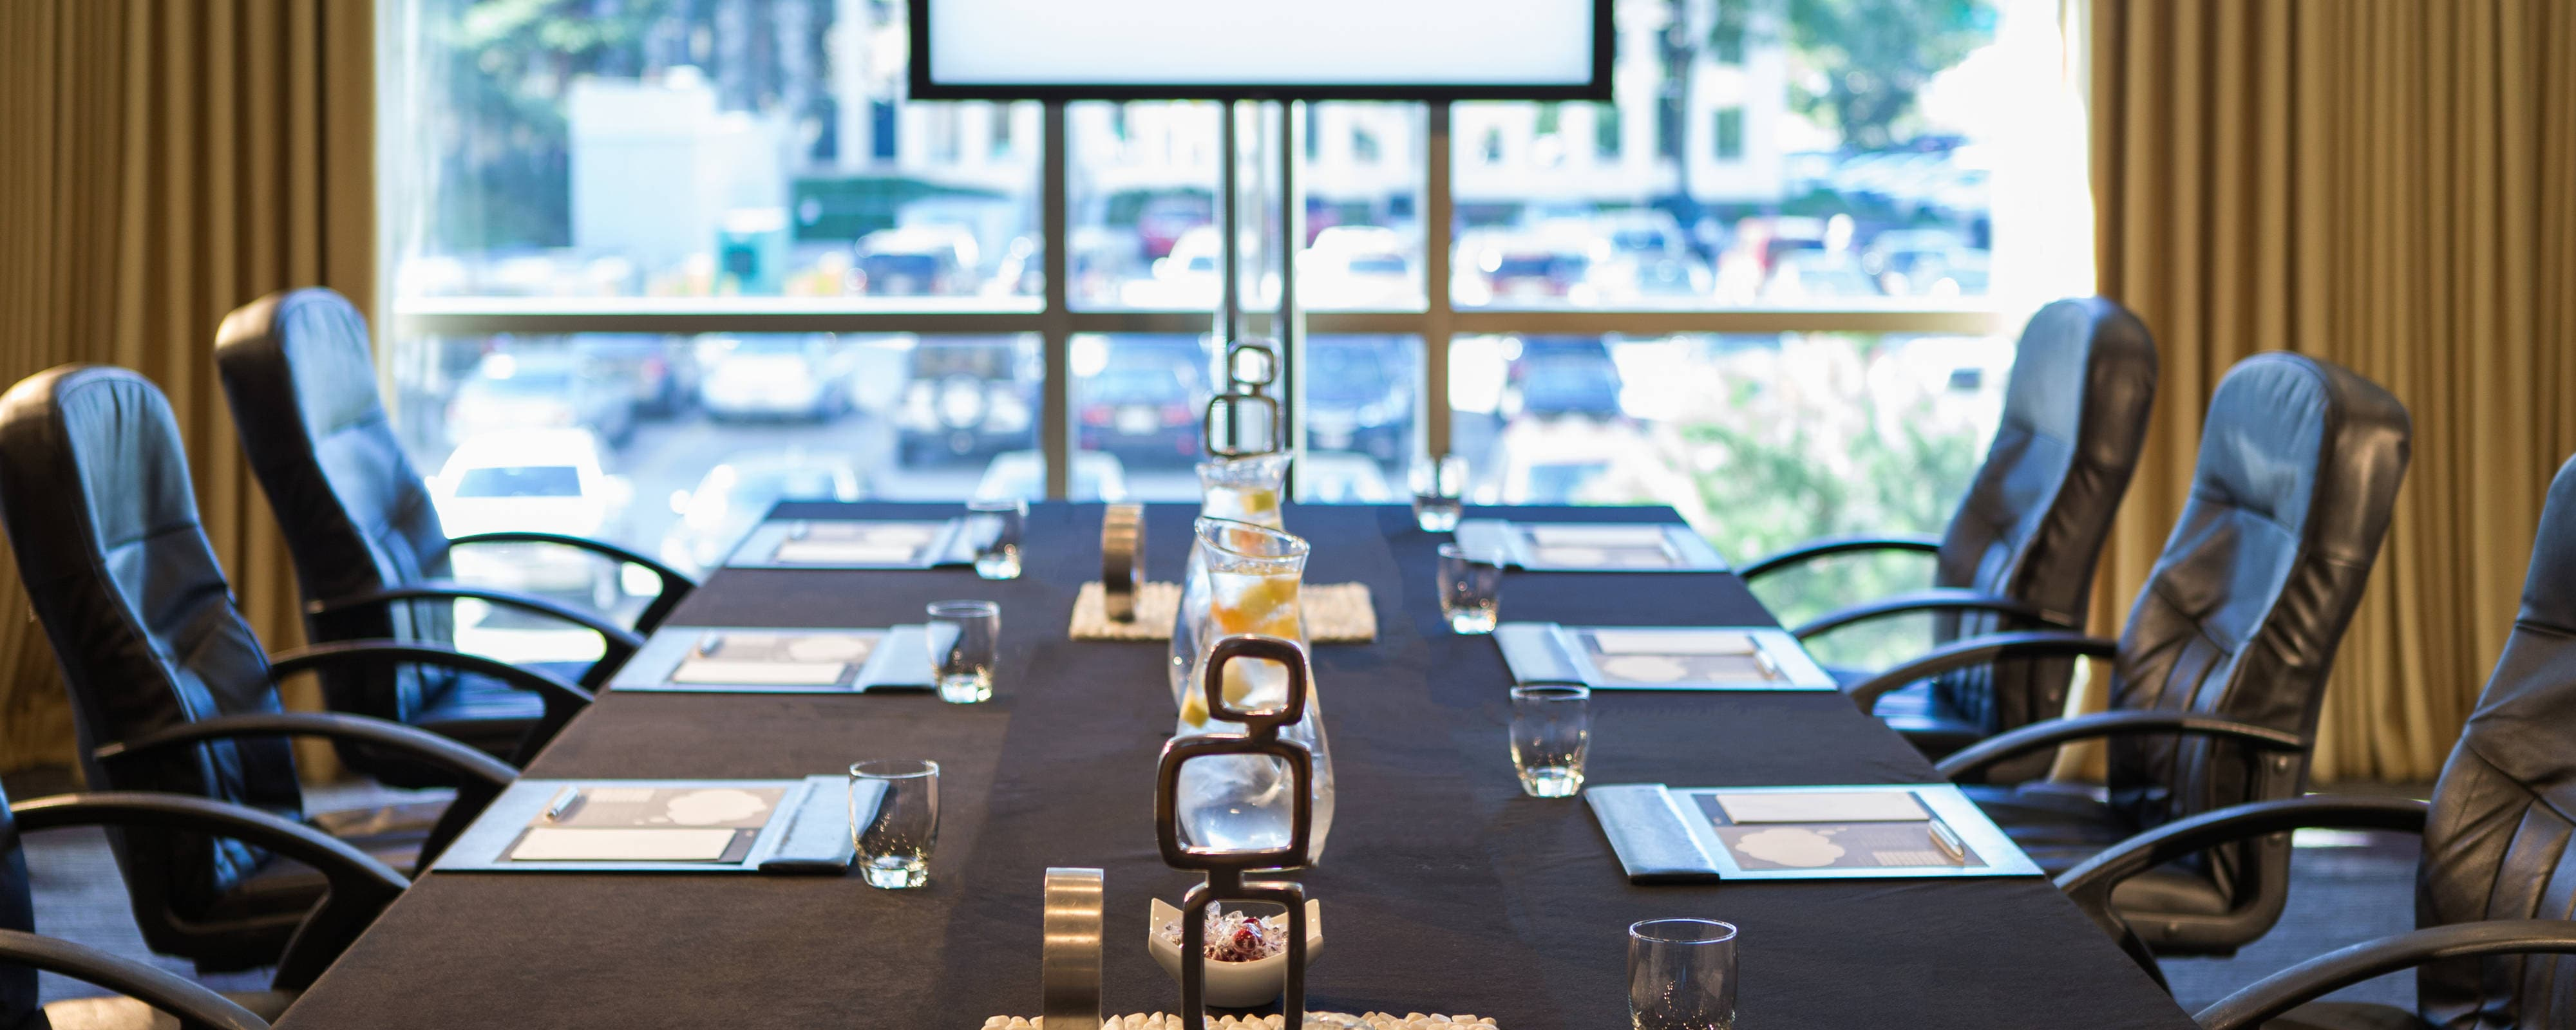 Meeting space in chicago chicago o 39 hare hotel - Small event space brooklyn plan ...